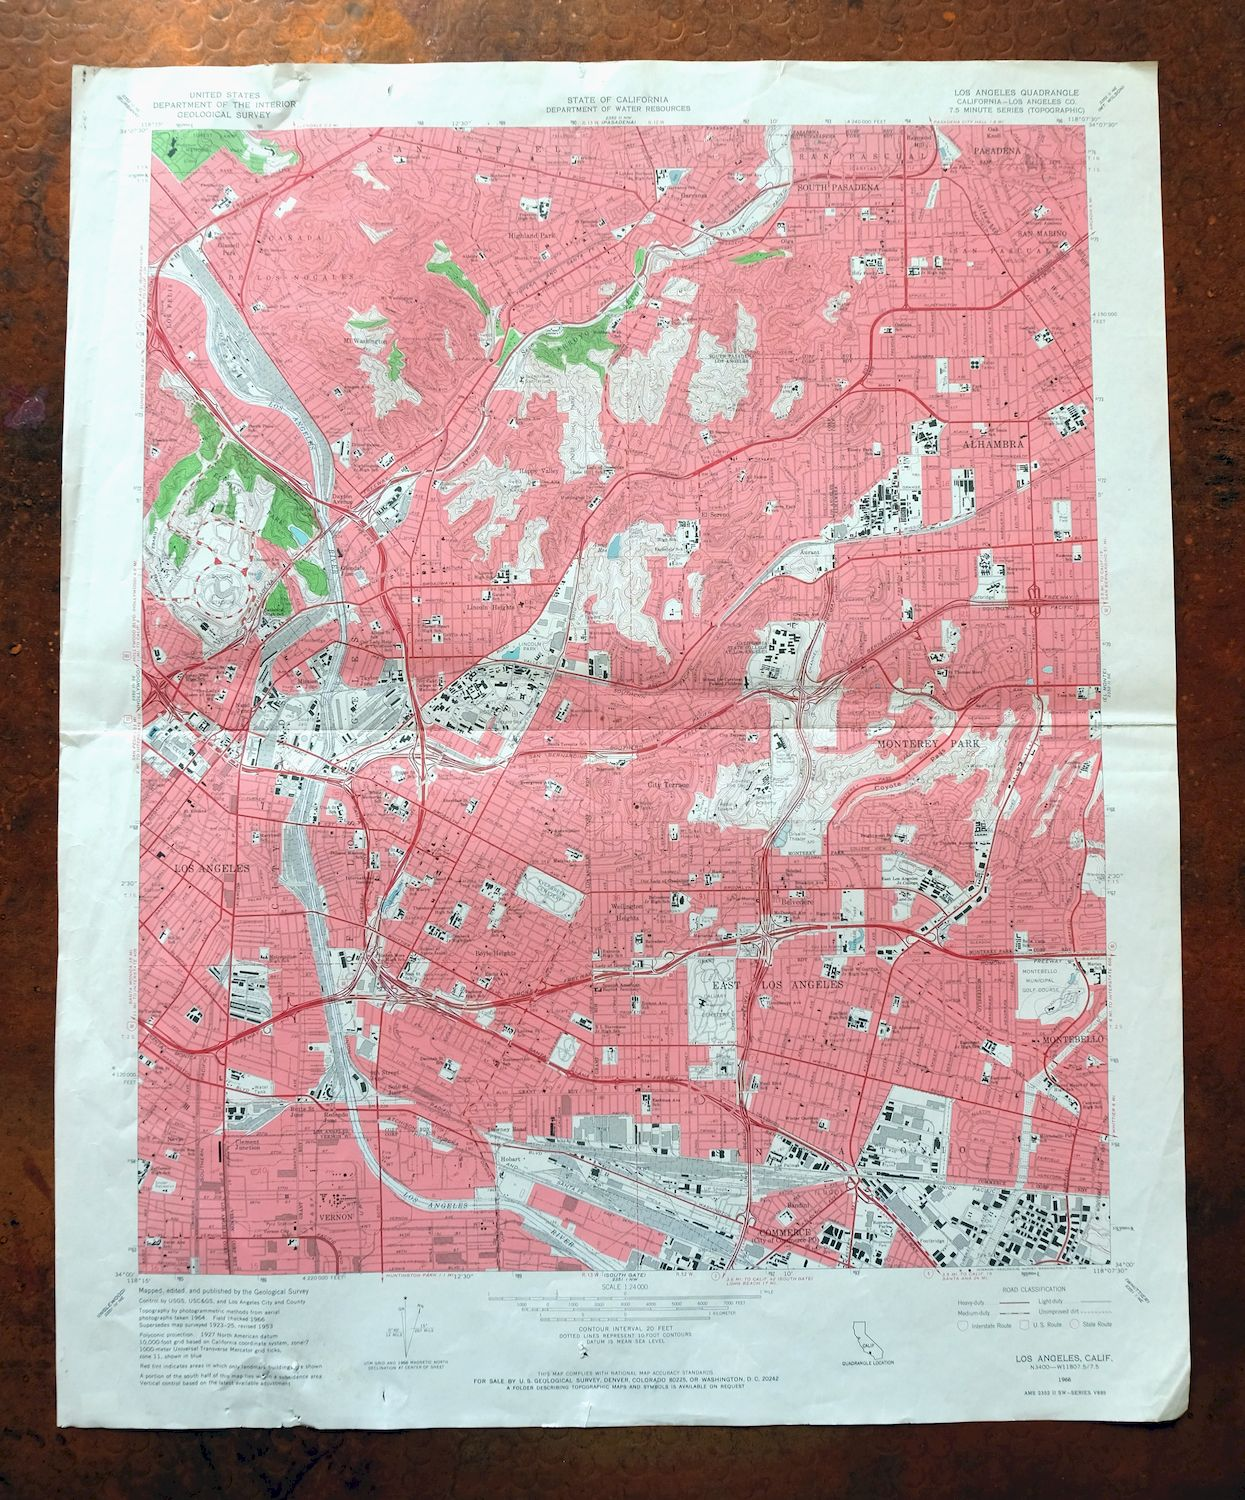 Details about Los Angeles California Vintage USGS Topo Map 1966 Glendale on